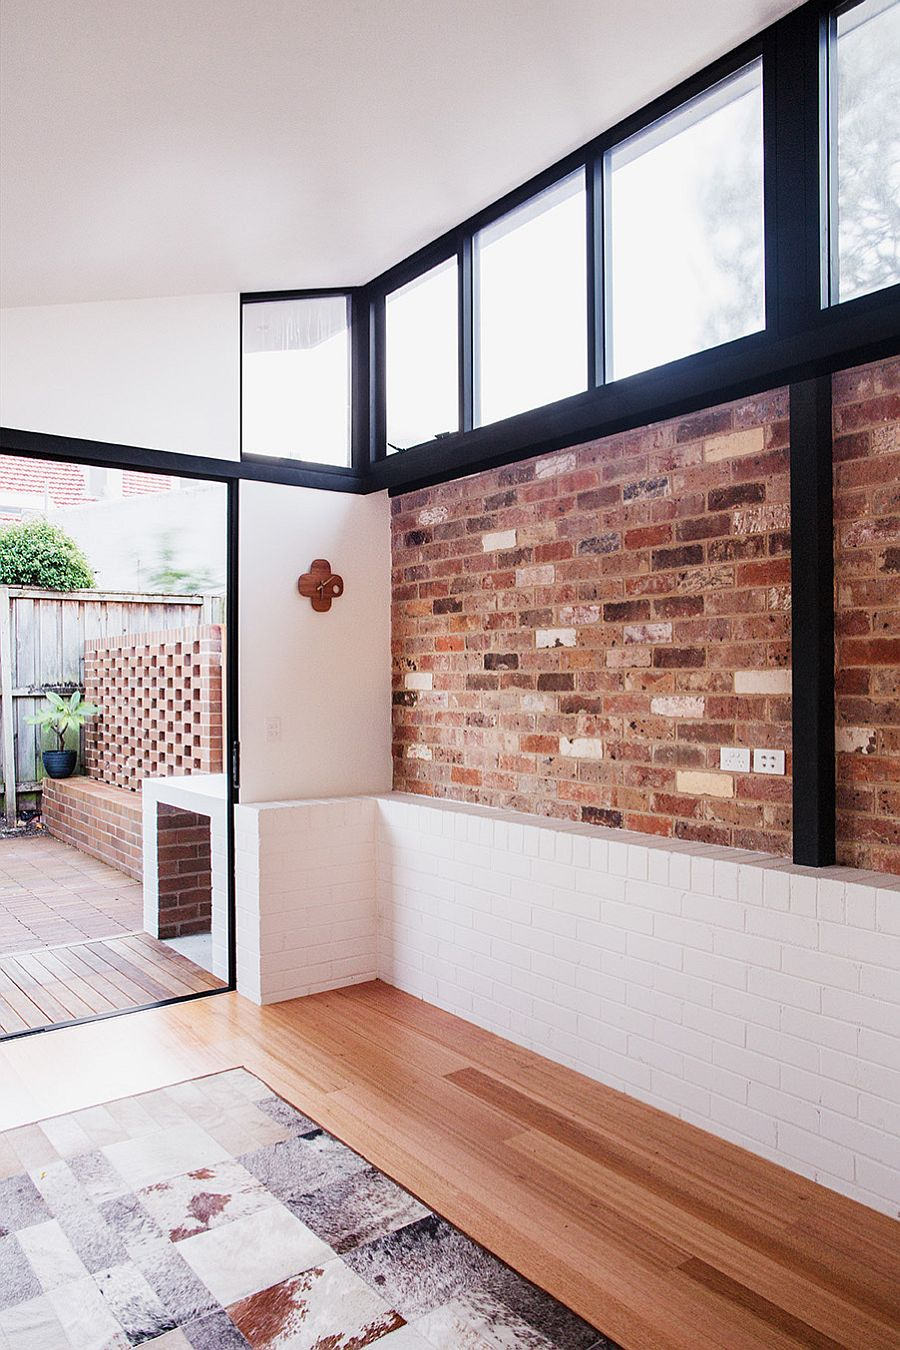 Old exposed brick wall is combined with recycled brick wall outside